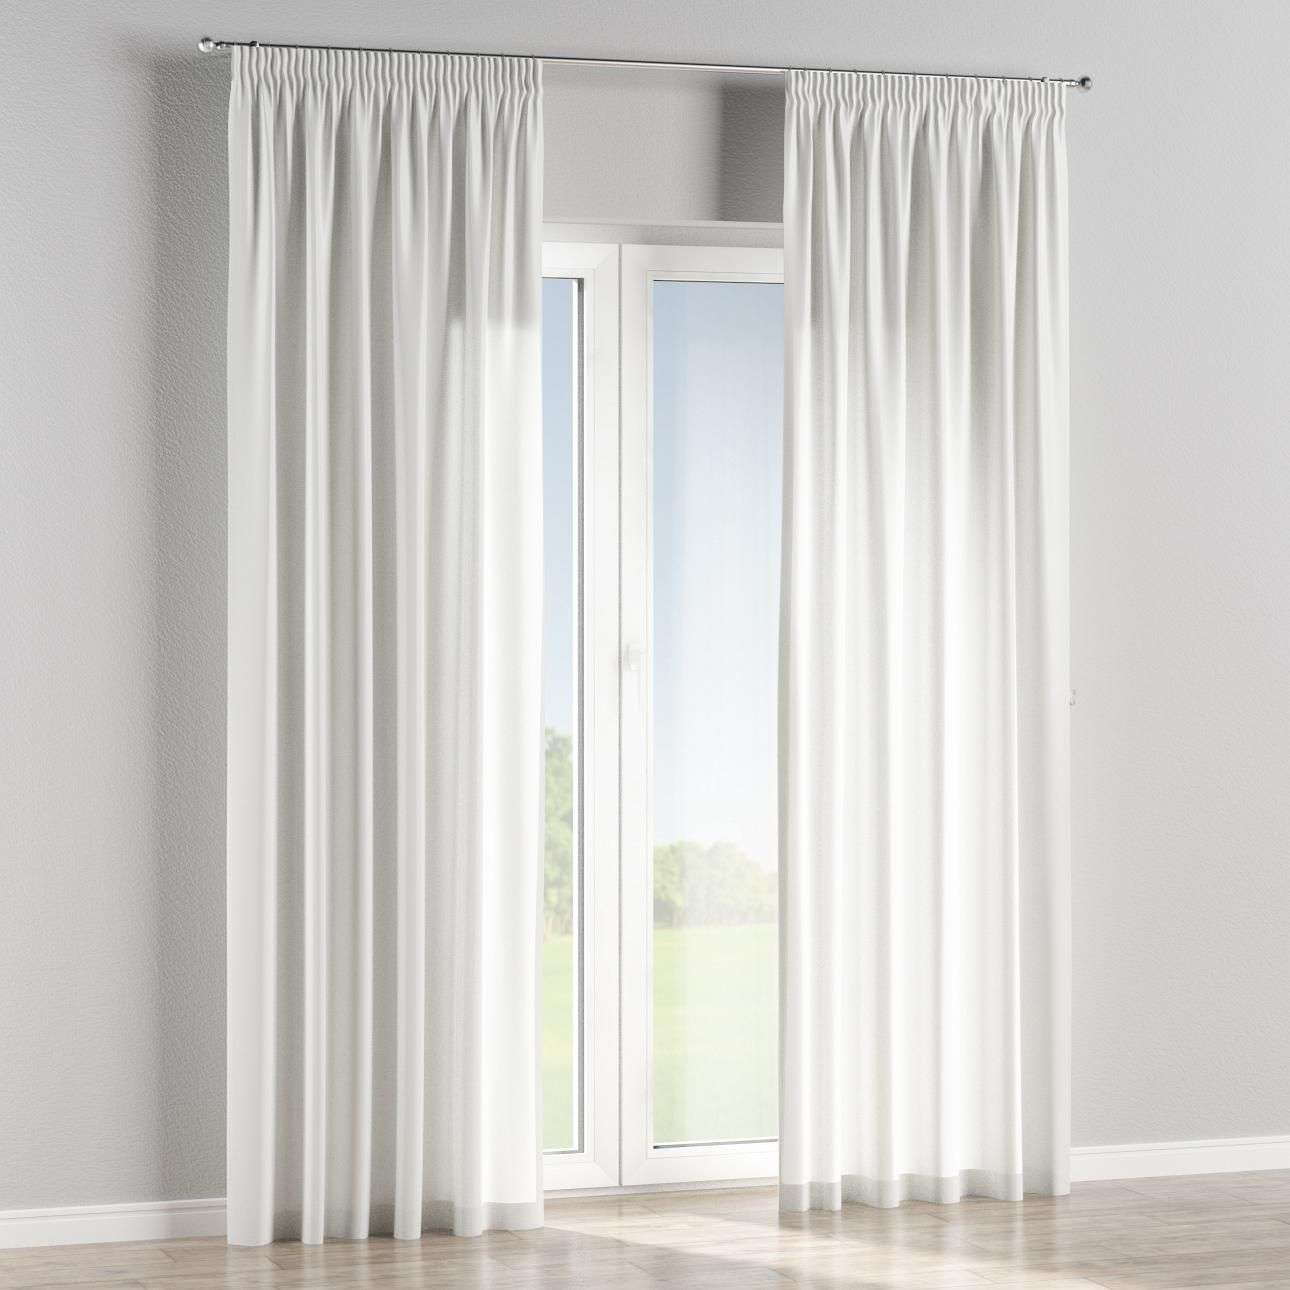 Pencil pleat curtains in collection Fleur , fabric: 137-25